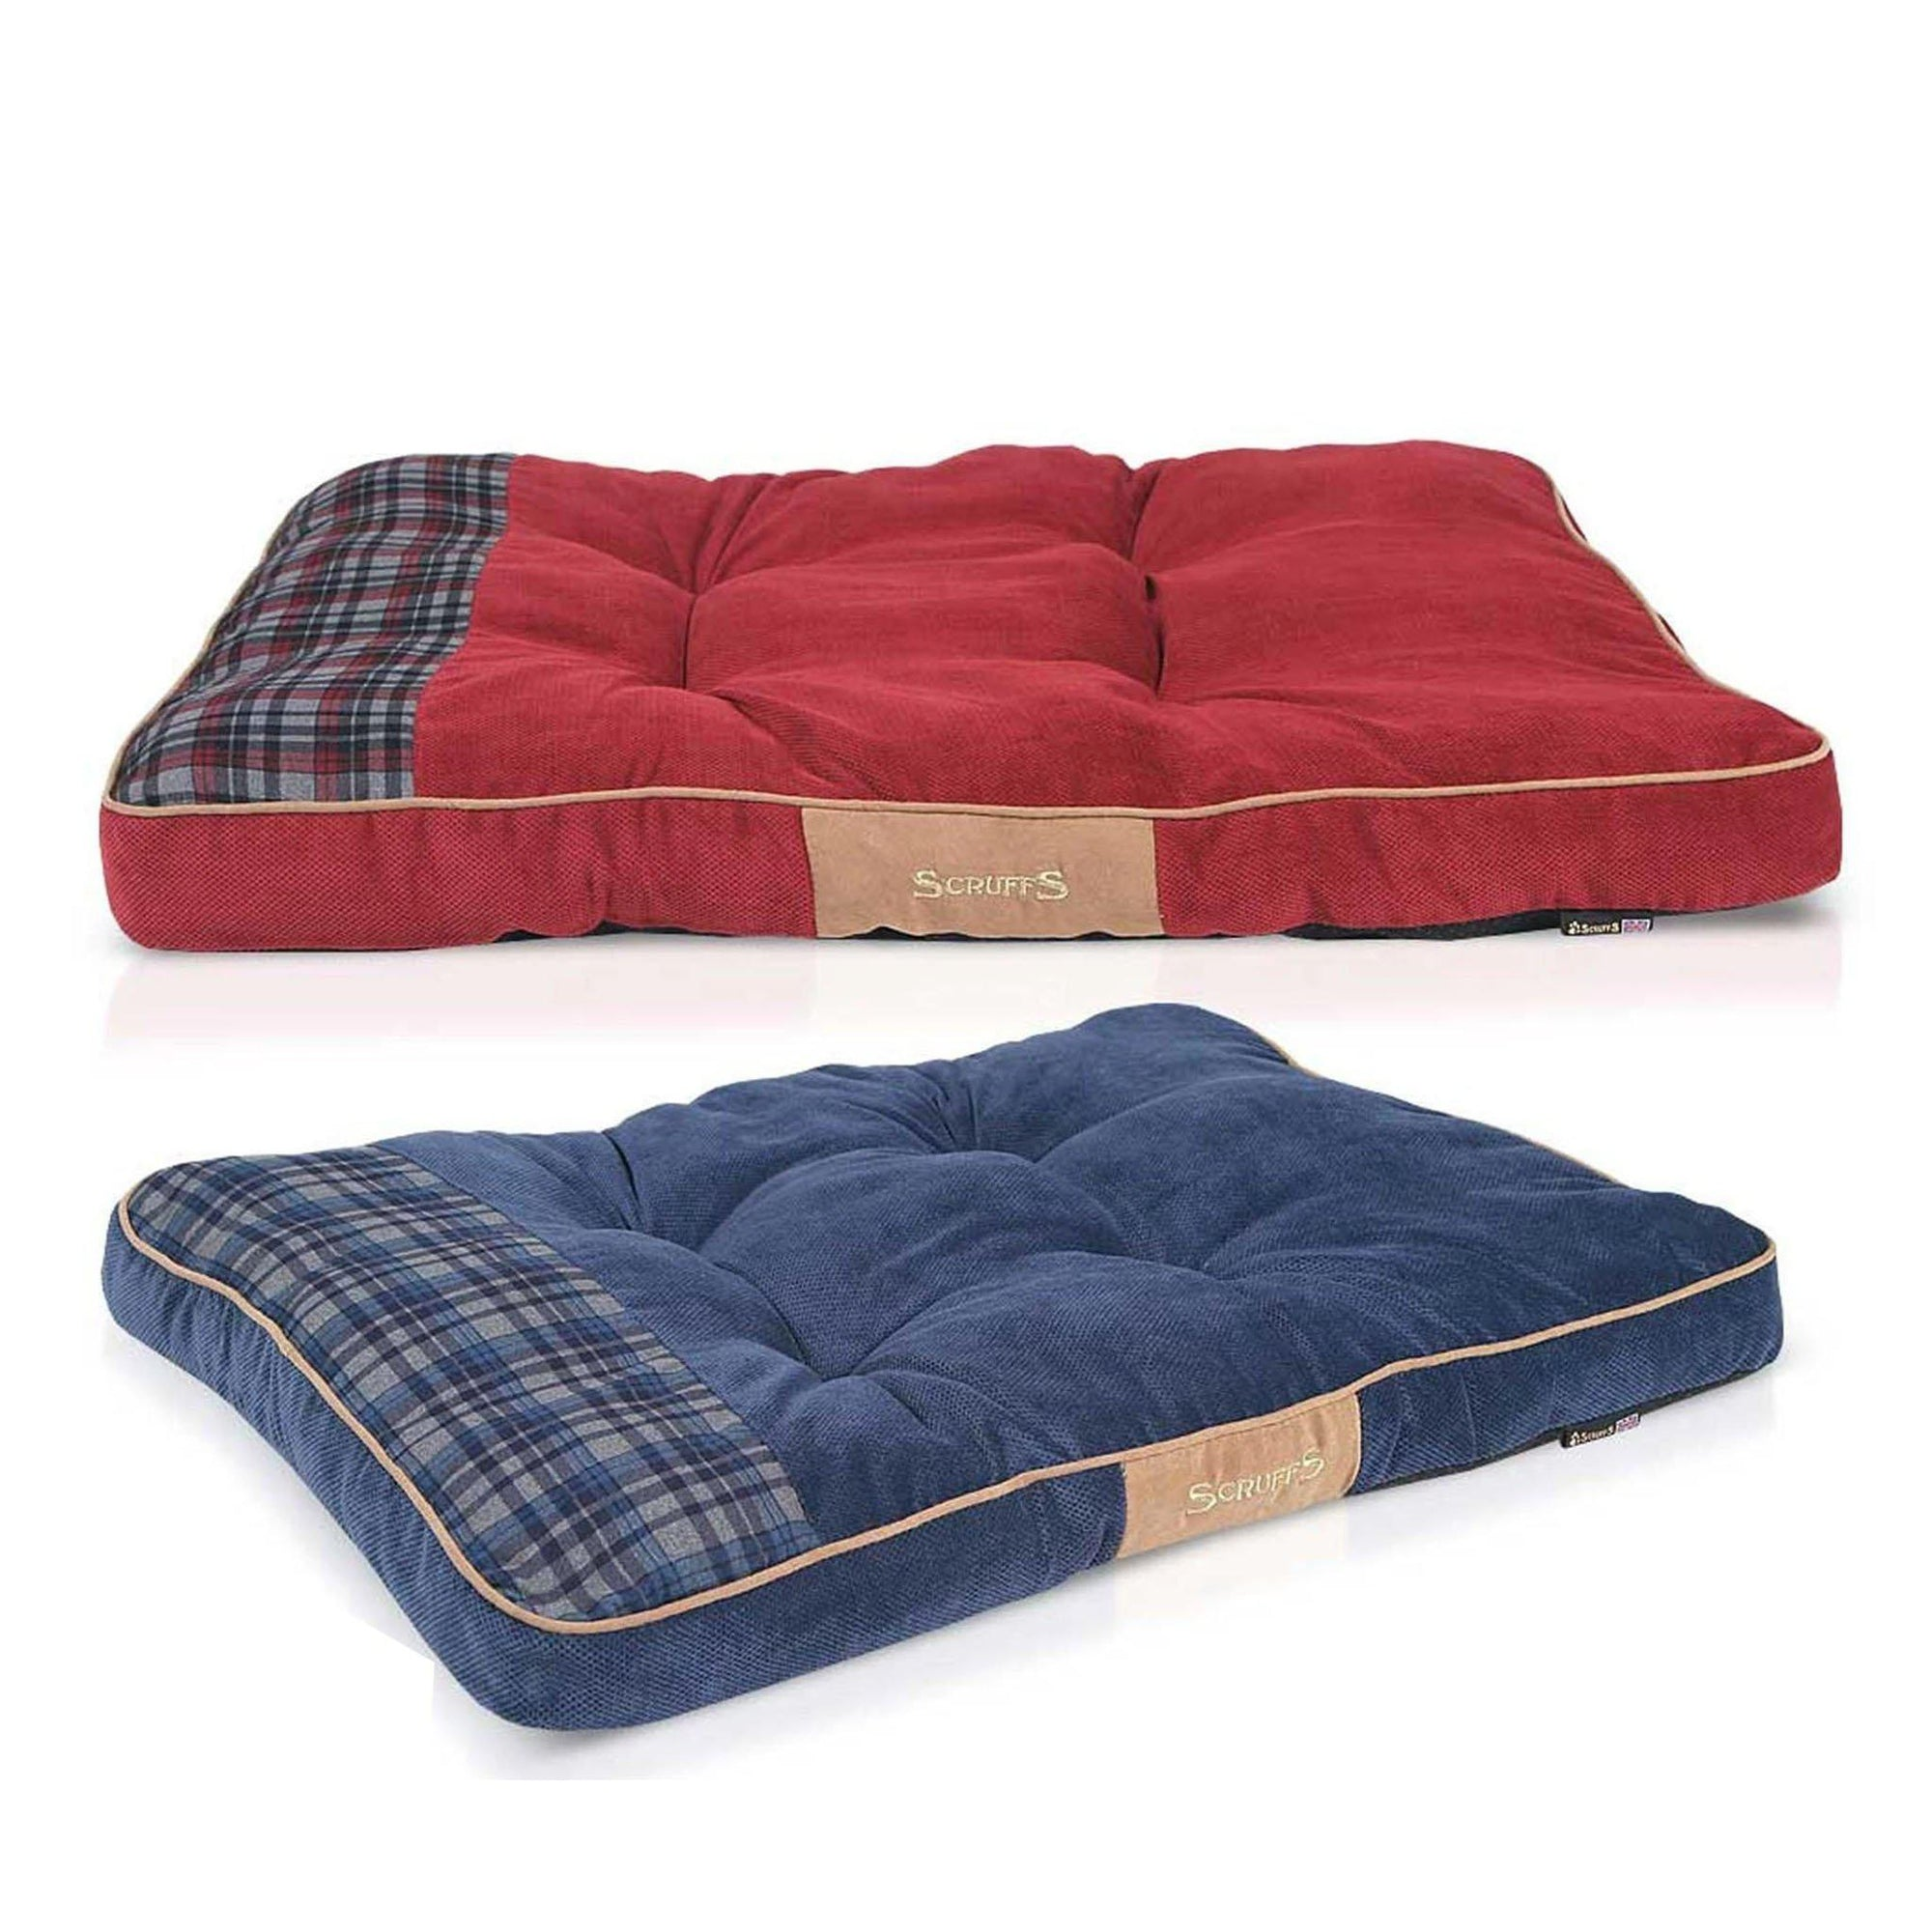 Highland Mattress - ComfyPet Products